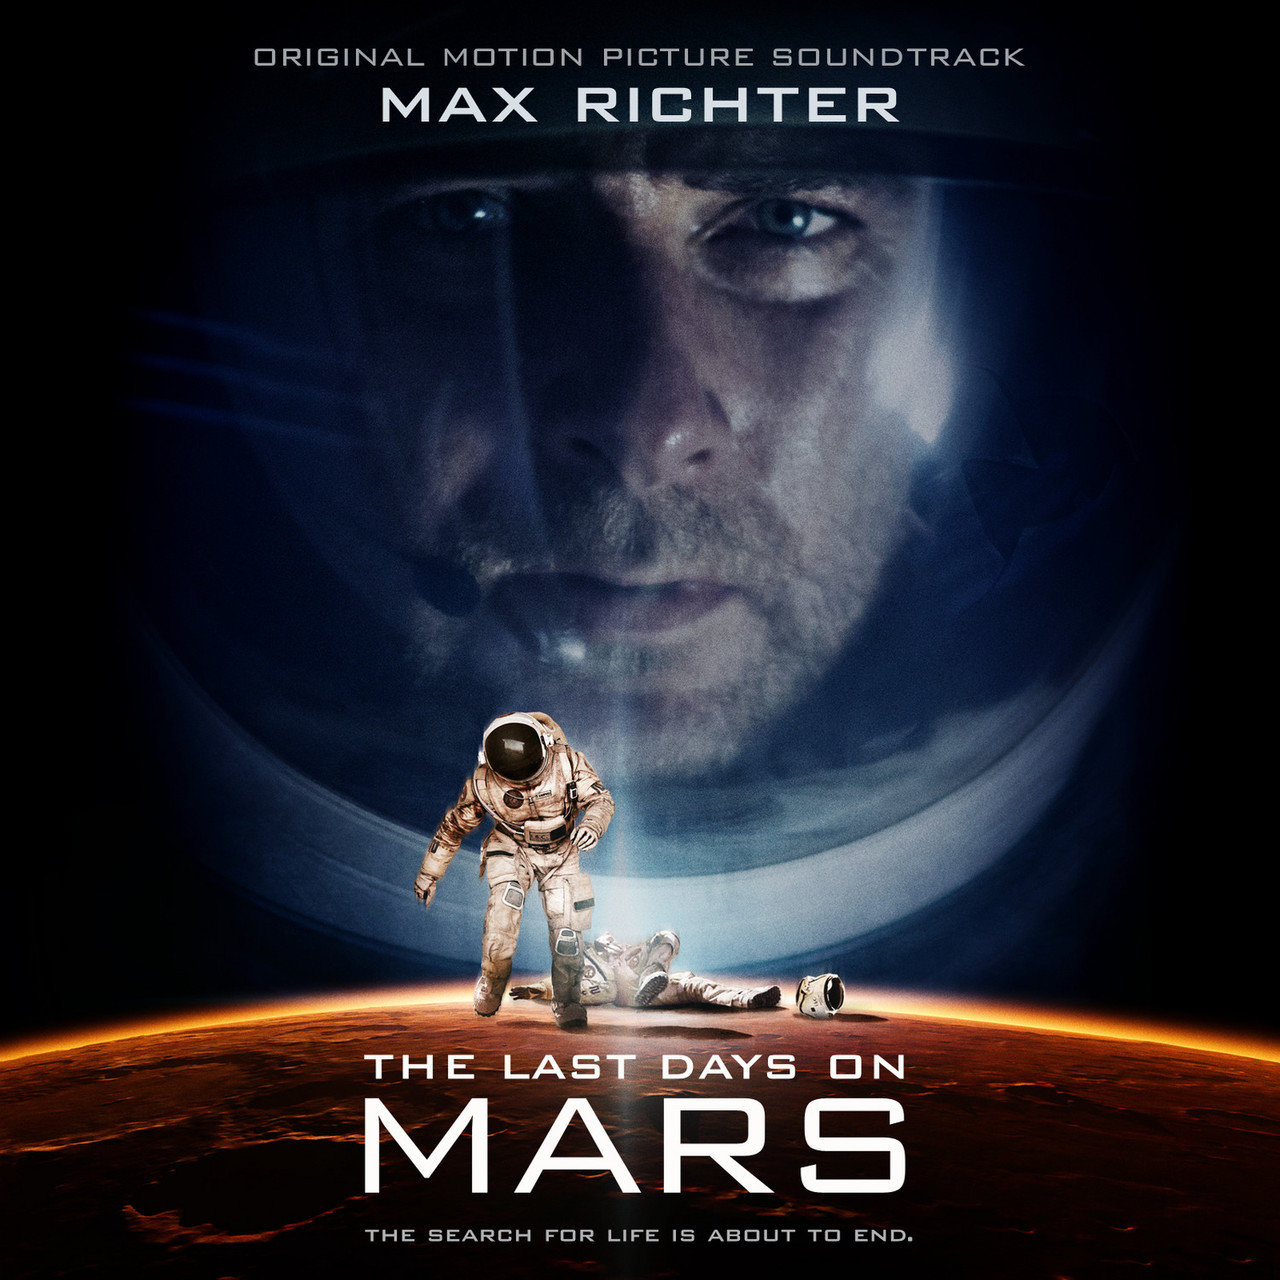 Last Days on Mars (Original Motion Picture Soundtrack)